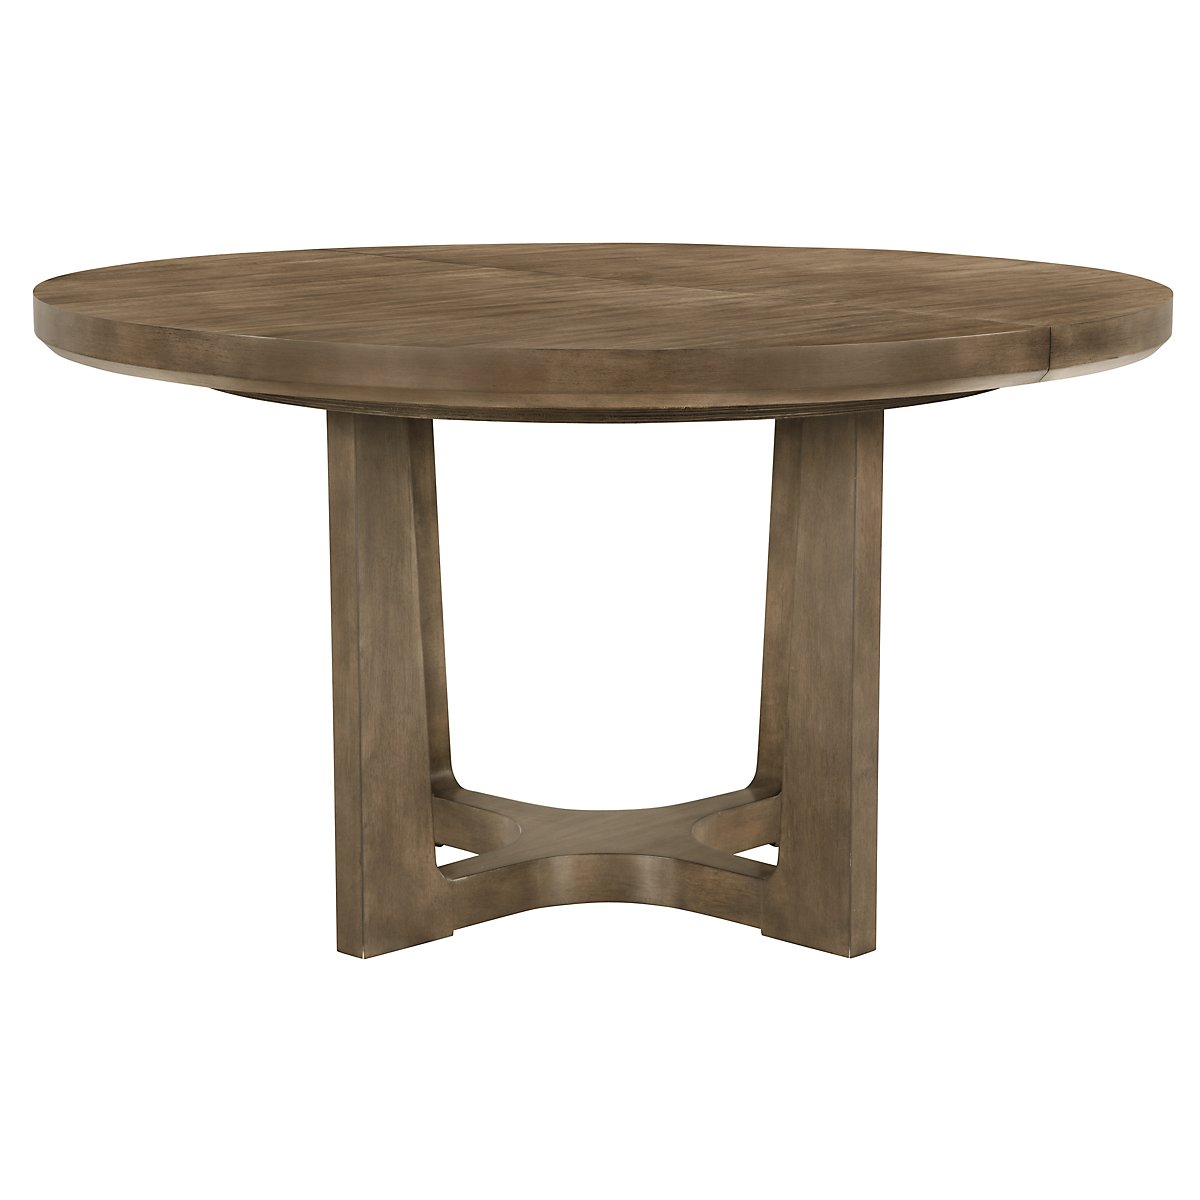 Preston Gray Round High/Low Table